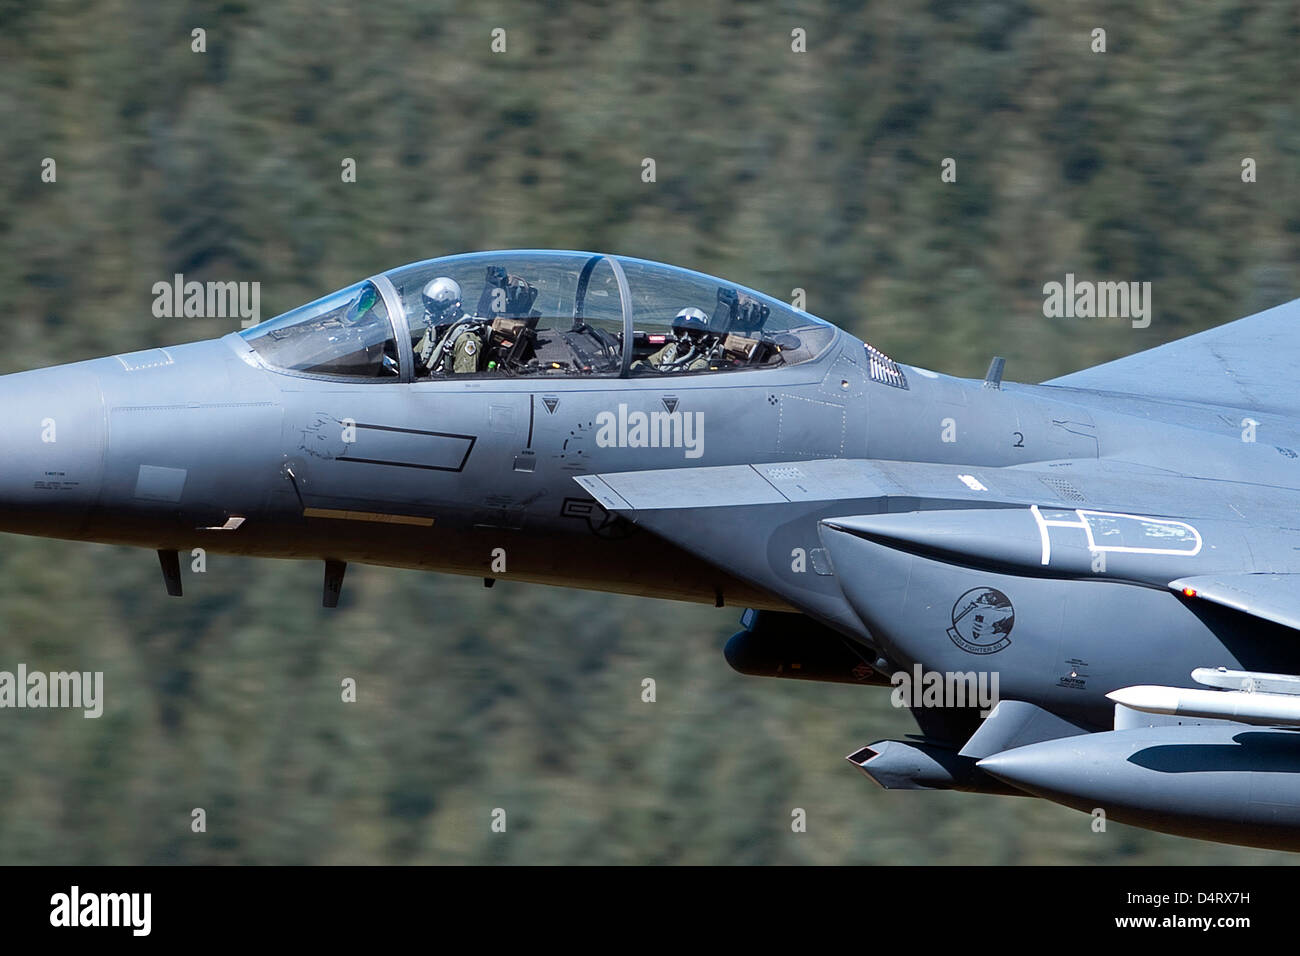 F-15E Strike Eagle low flying over Wales, United Kingdom. Stock Photo